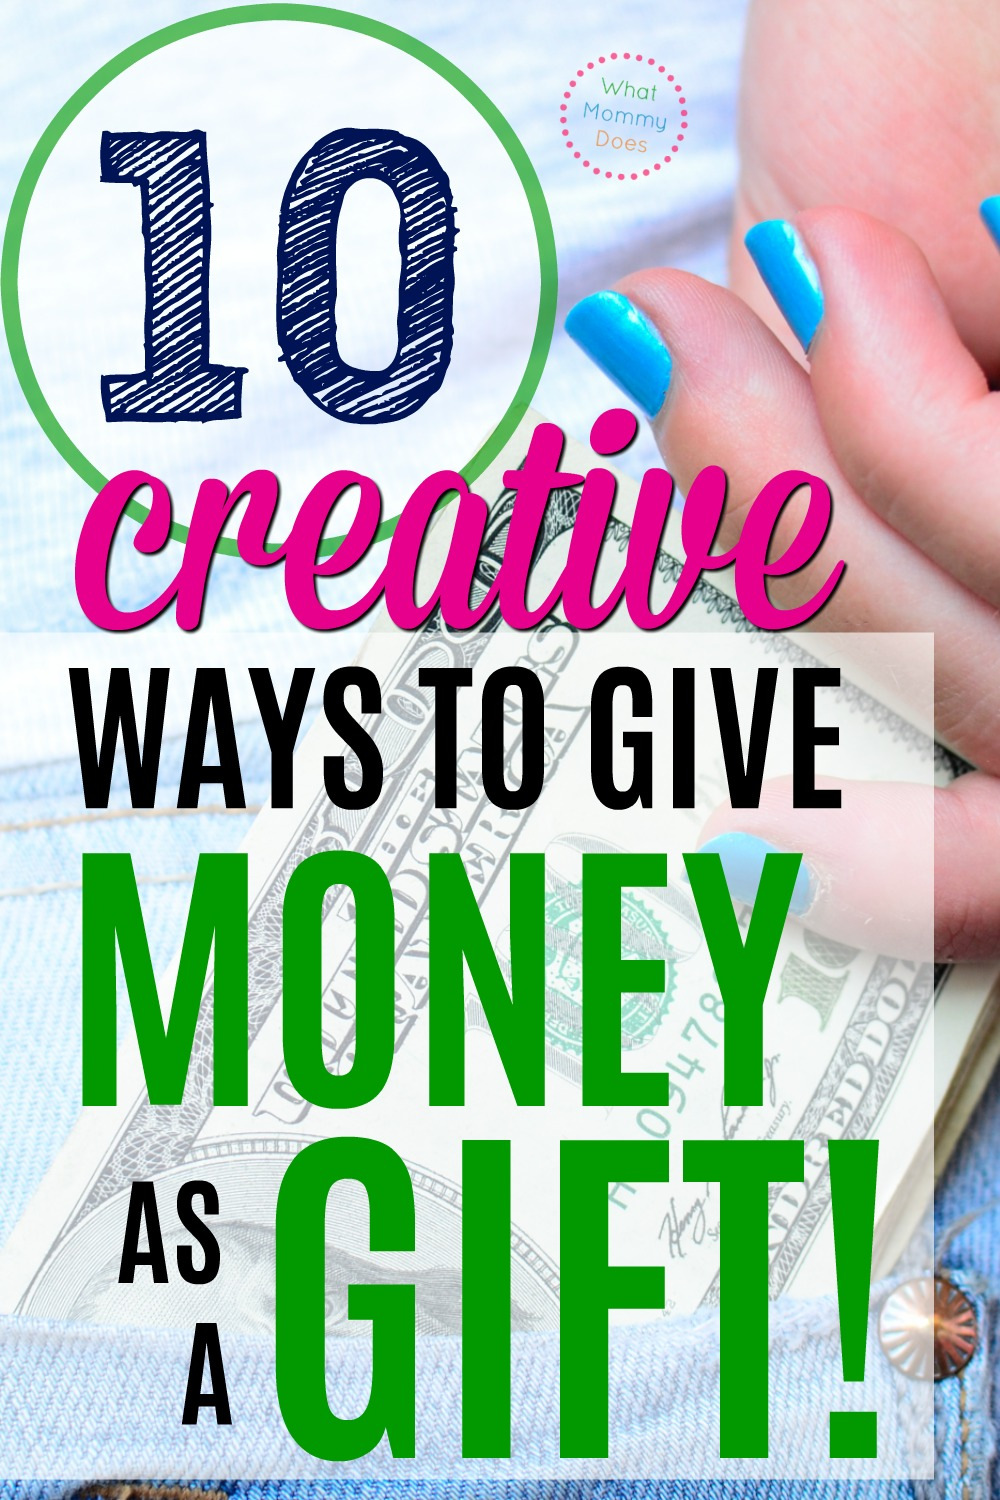 I just love giving money & gift cards for Christmas presents - it's so practical & it's what most people really want! These 10 creative money gift ideas are perfect for teenagers, college students, or anyone who could use money around the holidays. Your gifts will be ready in minutes! You can totally make these gifts last minute in a pinch. :)